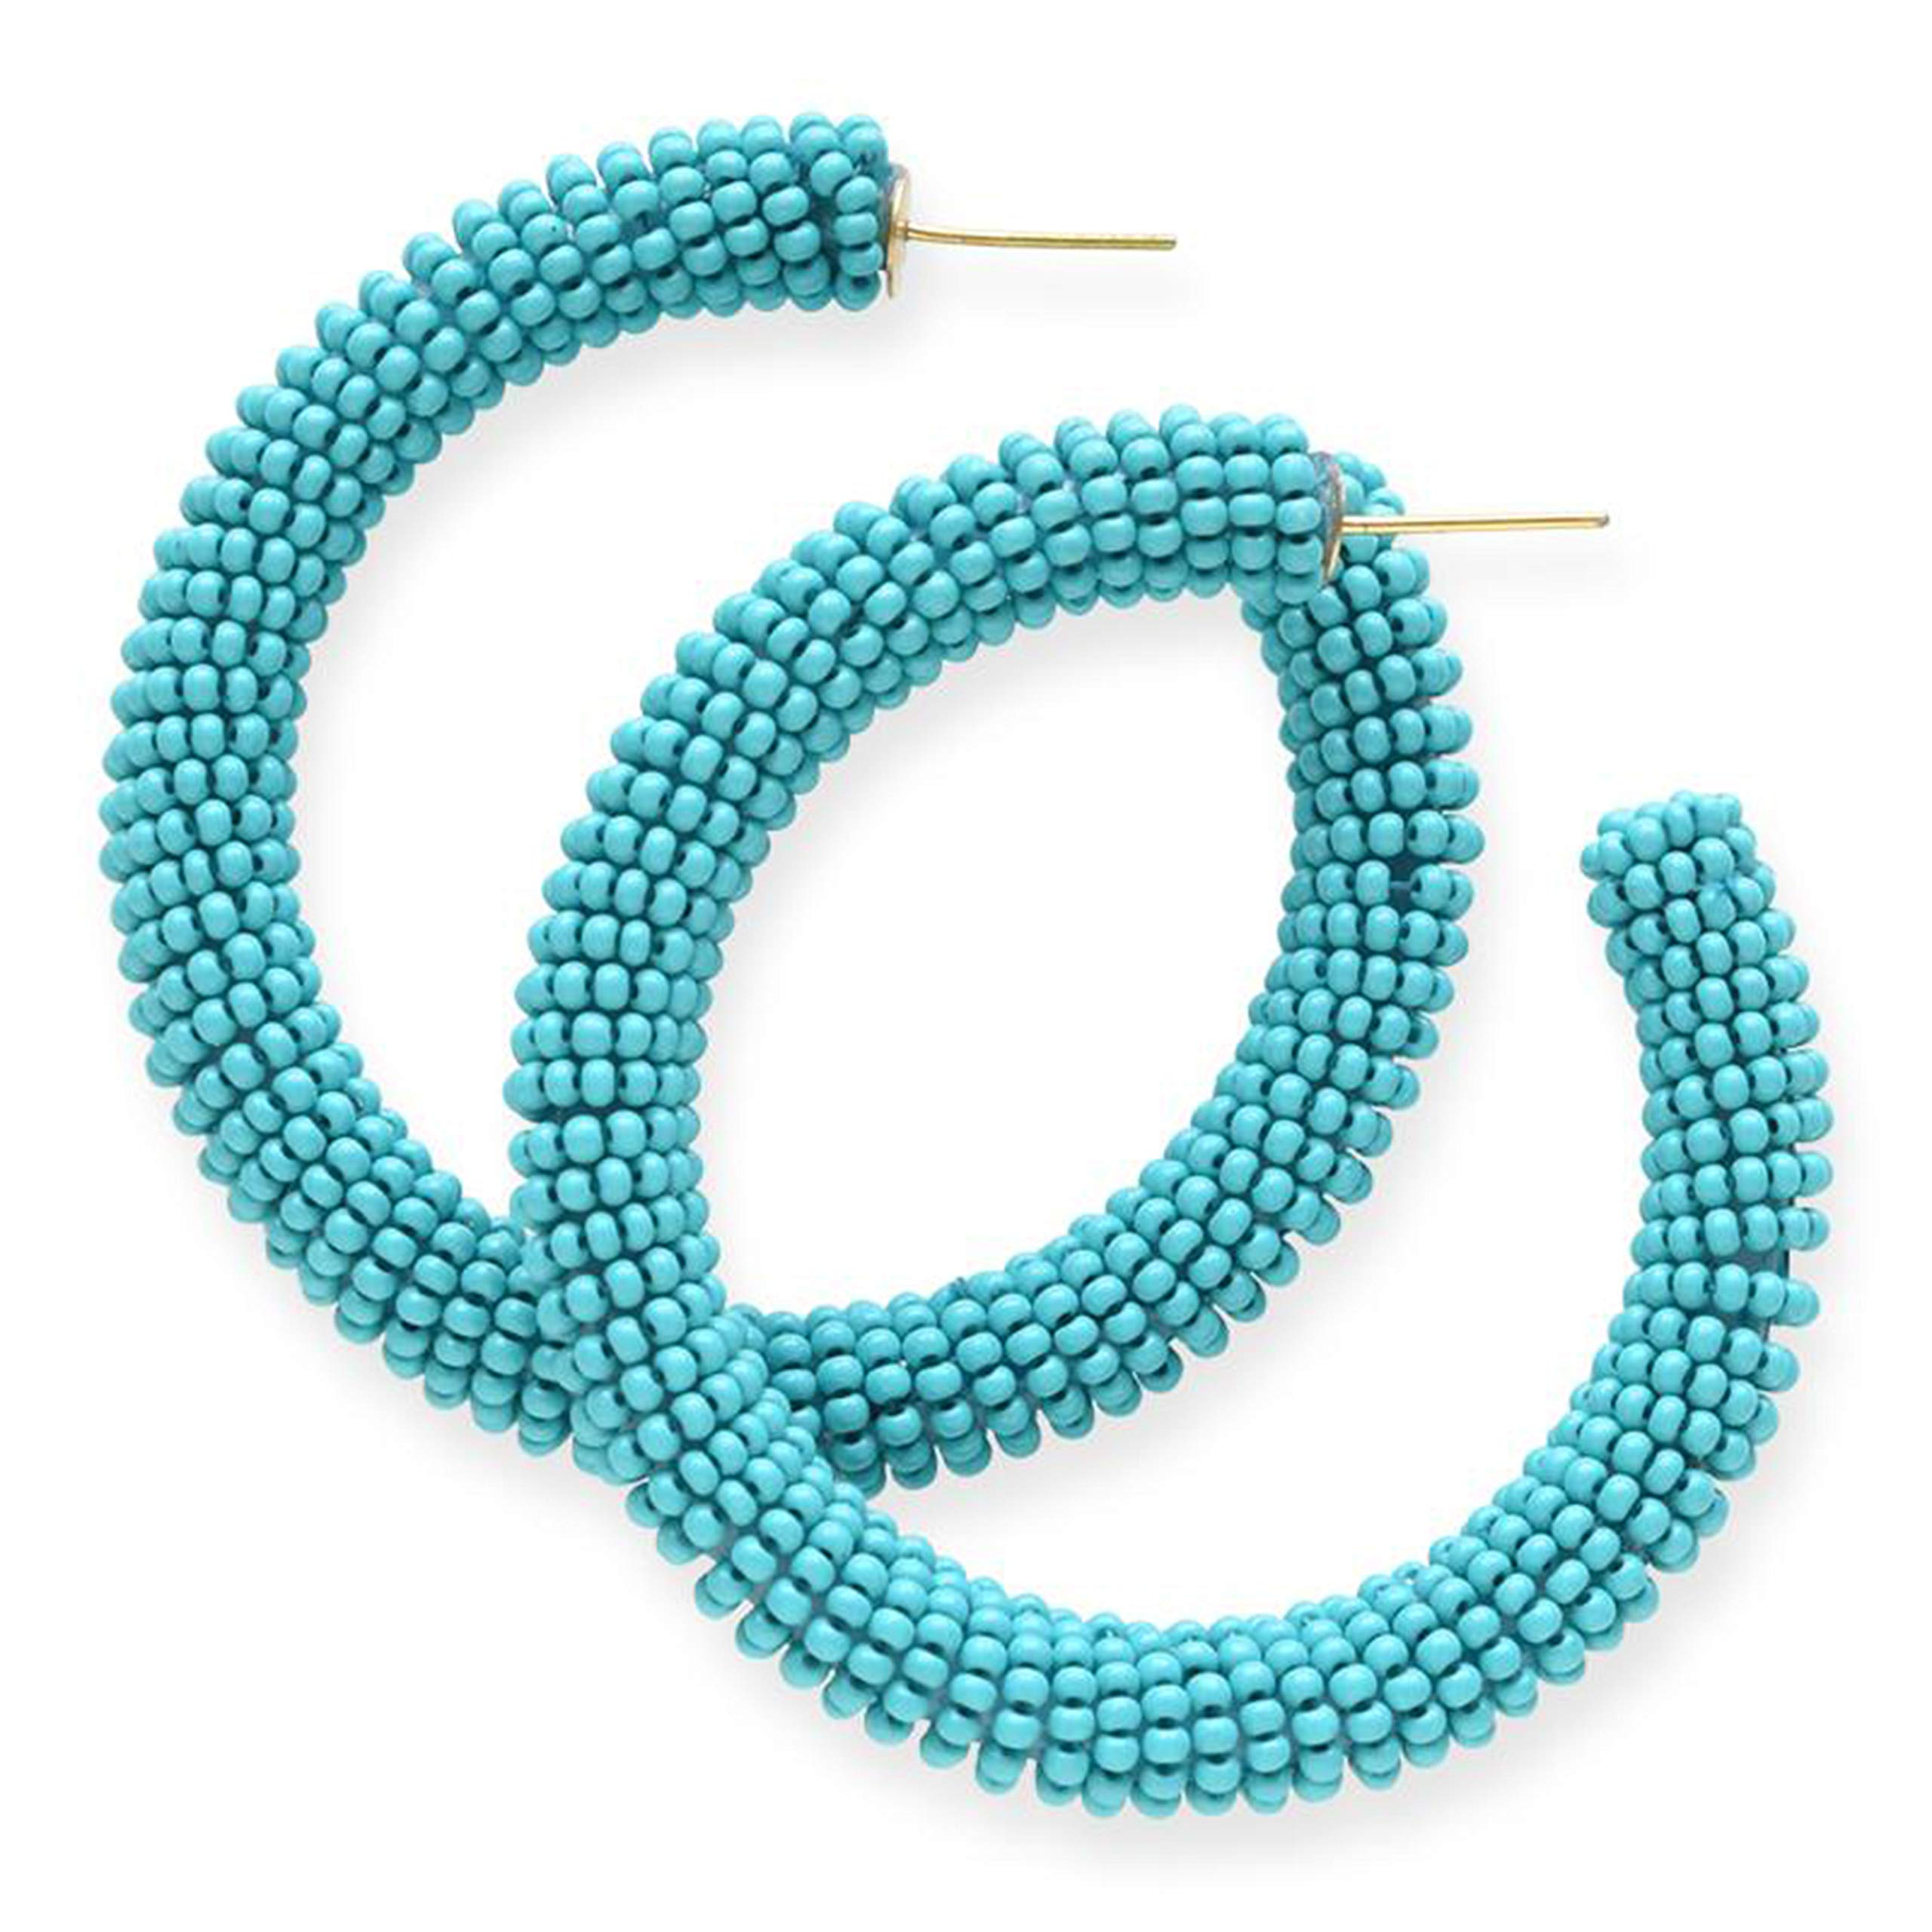 INK+ALLOY Women's Solid Hoop Glass Seed Bead Earrings, Turquoise - 2.5 Inch - Handmade Beaded Boho Style Earrings - In Organza Gift Bag by Ink+Alloy